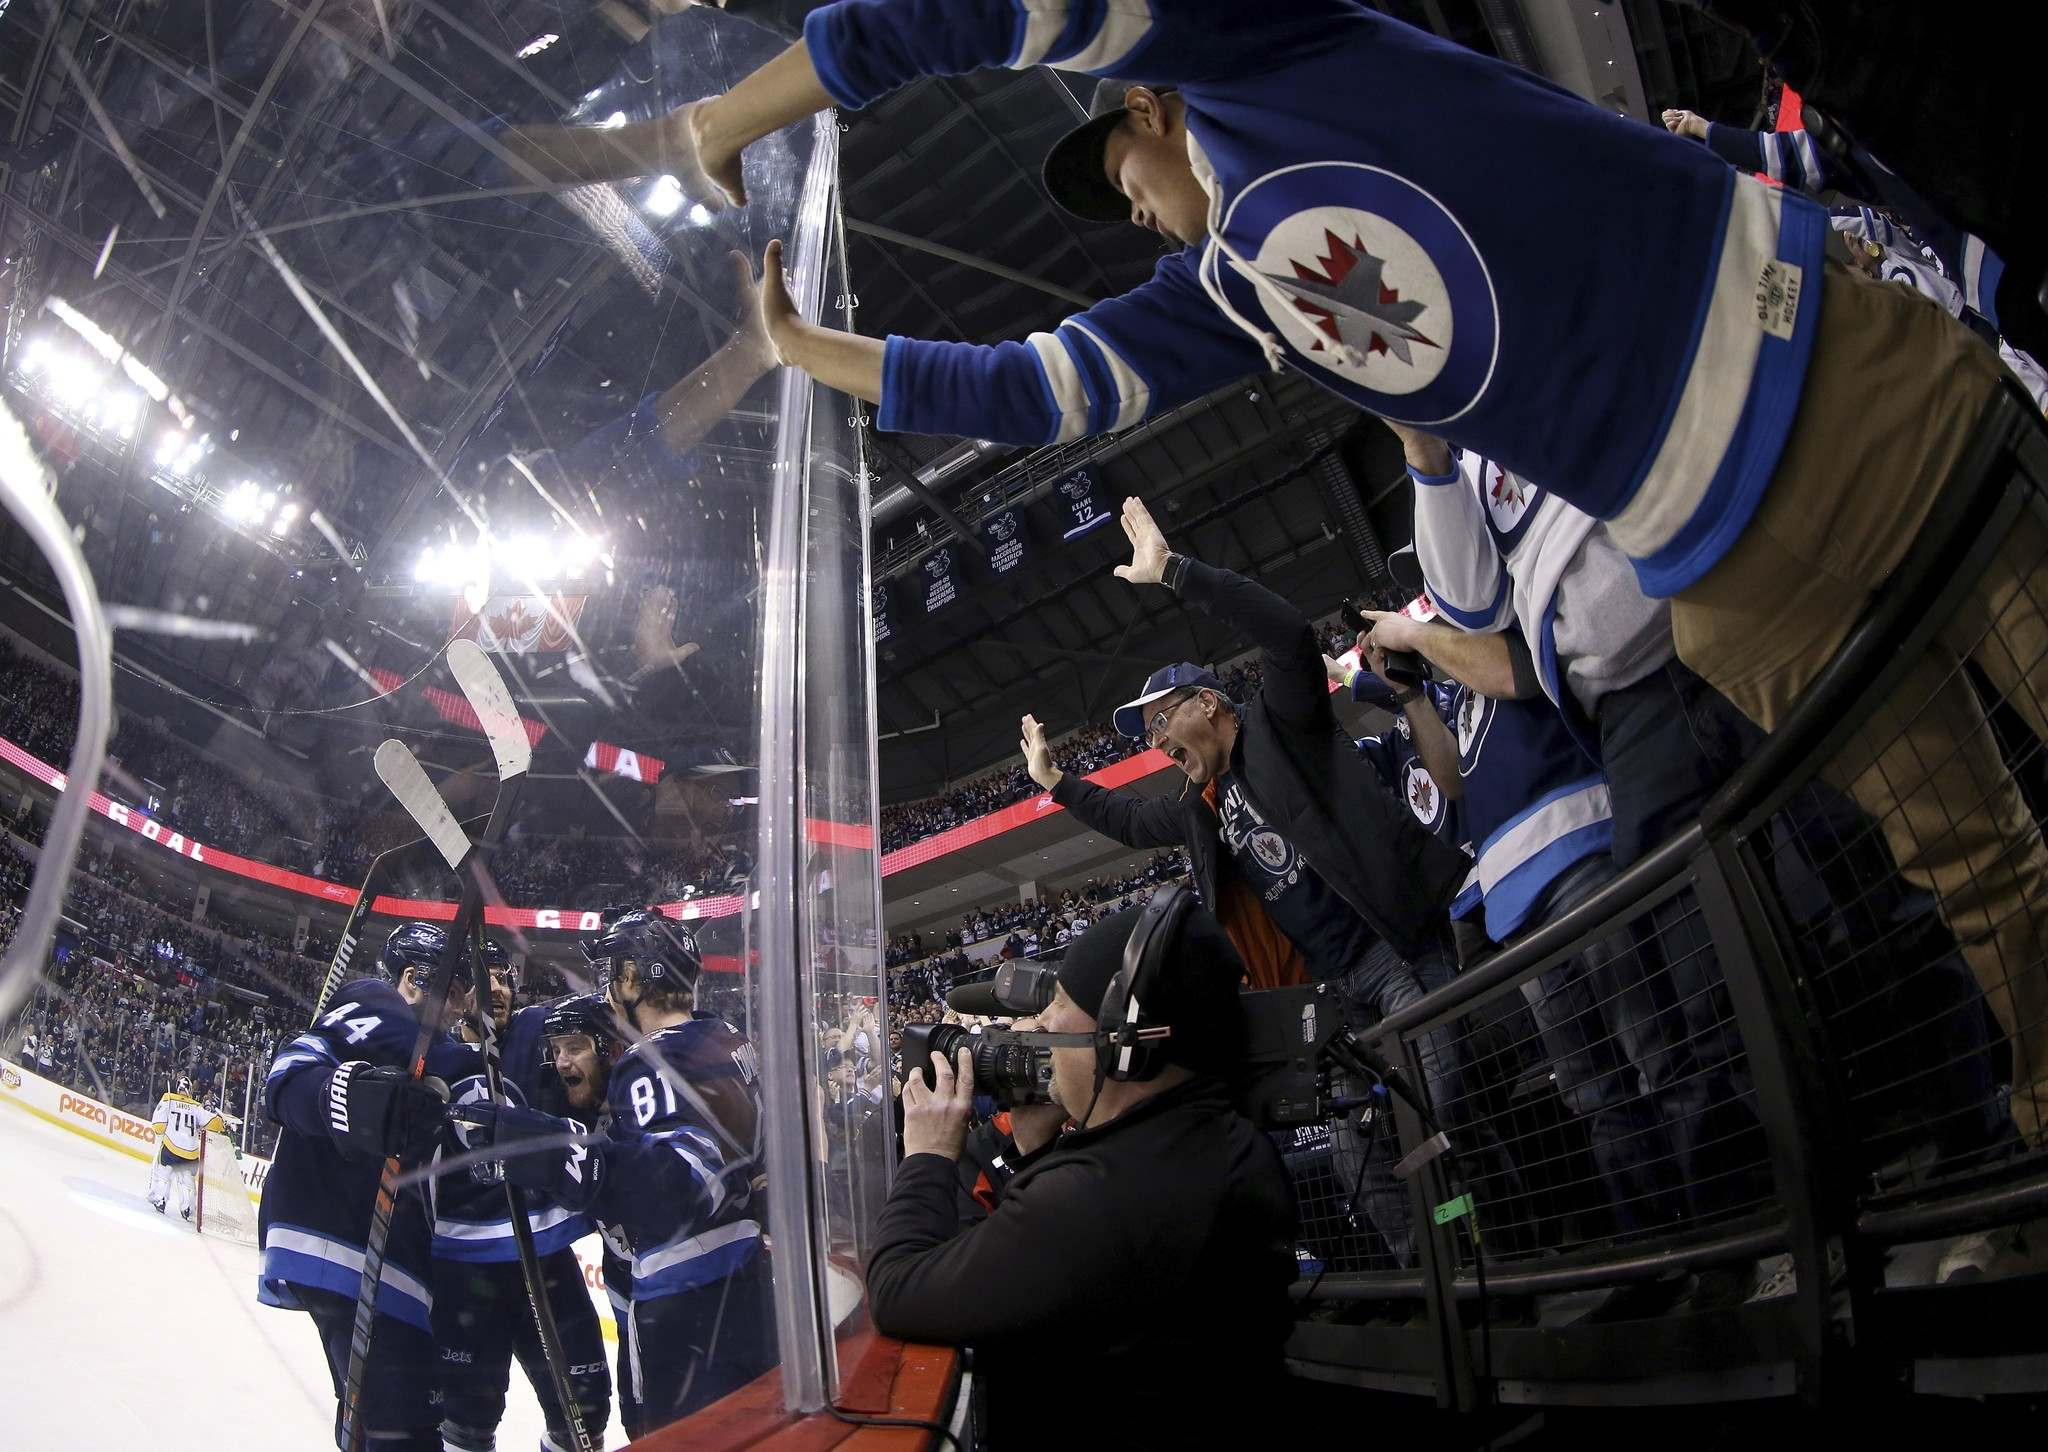 Winnipeg Jets&rsquo; Josh Morrissey (44), Ben Chiarot (7), Bryan Little (18) and Kyle Connor (81) celebrate after Little scored as Jets fans go crazy as the team played against the Nashville Predators&rsquo; during second period NHL hockey action in Winnipeg on March 25. (Trevor Hagan / The Canadian Press)</p>